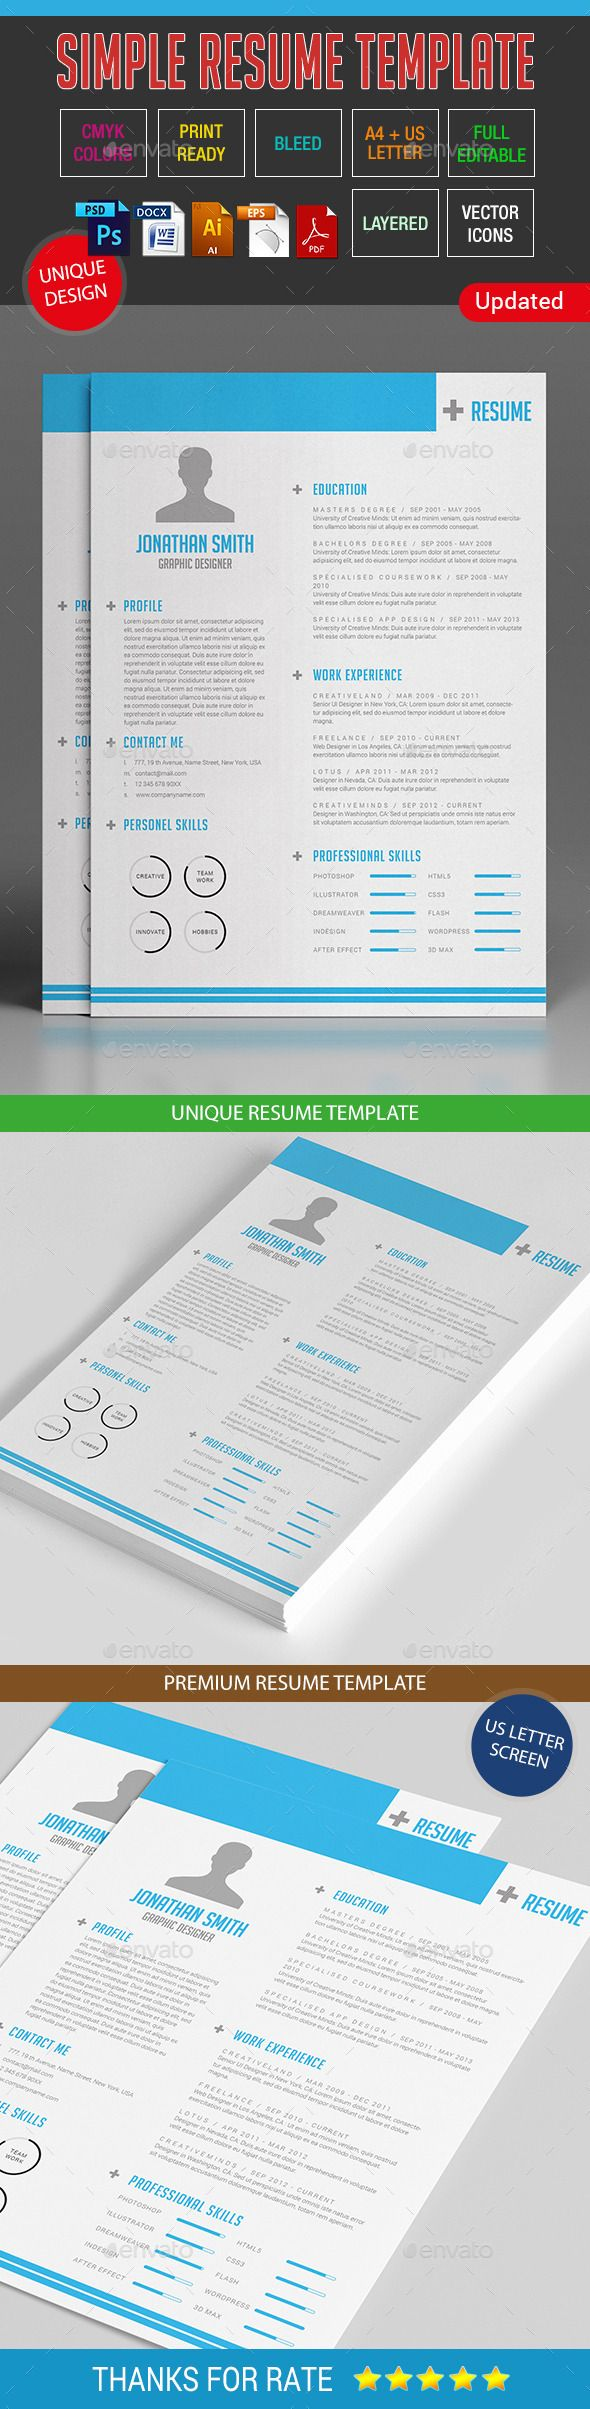 simple resume template 10